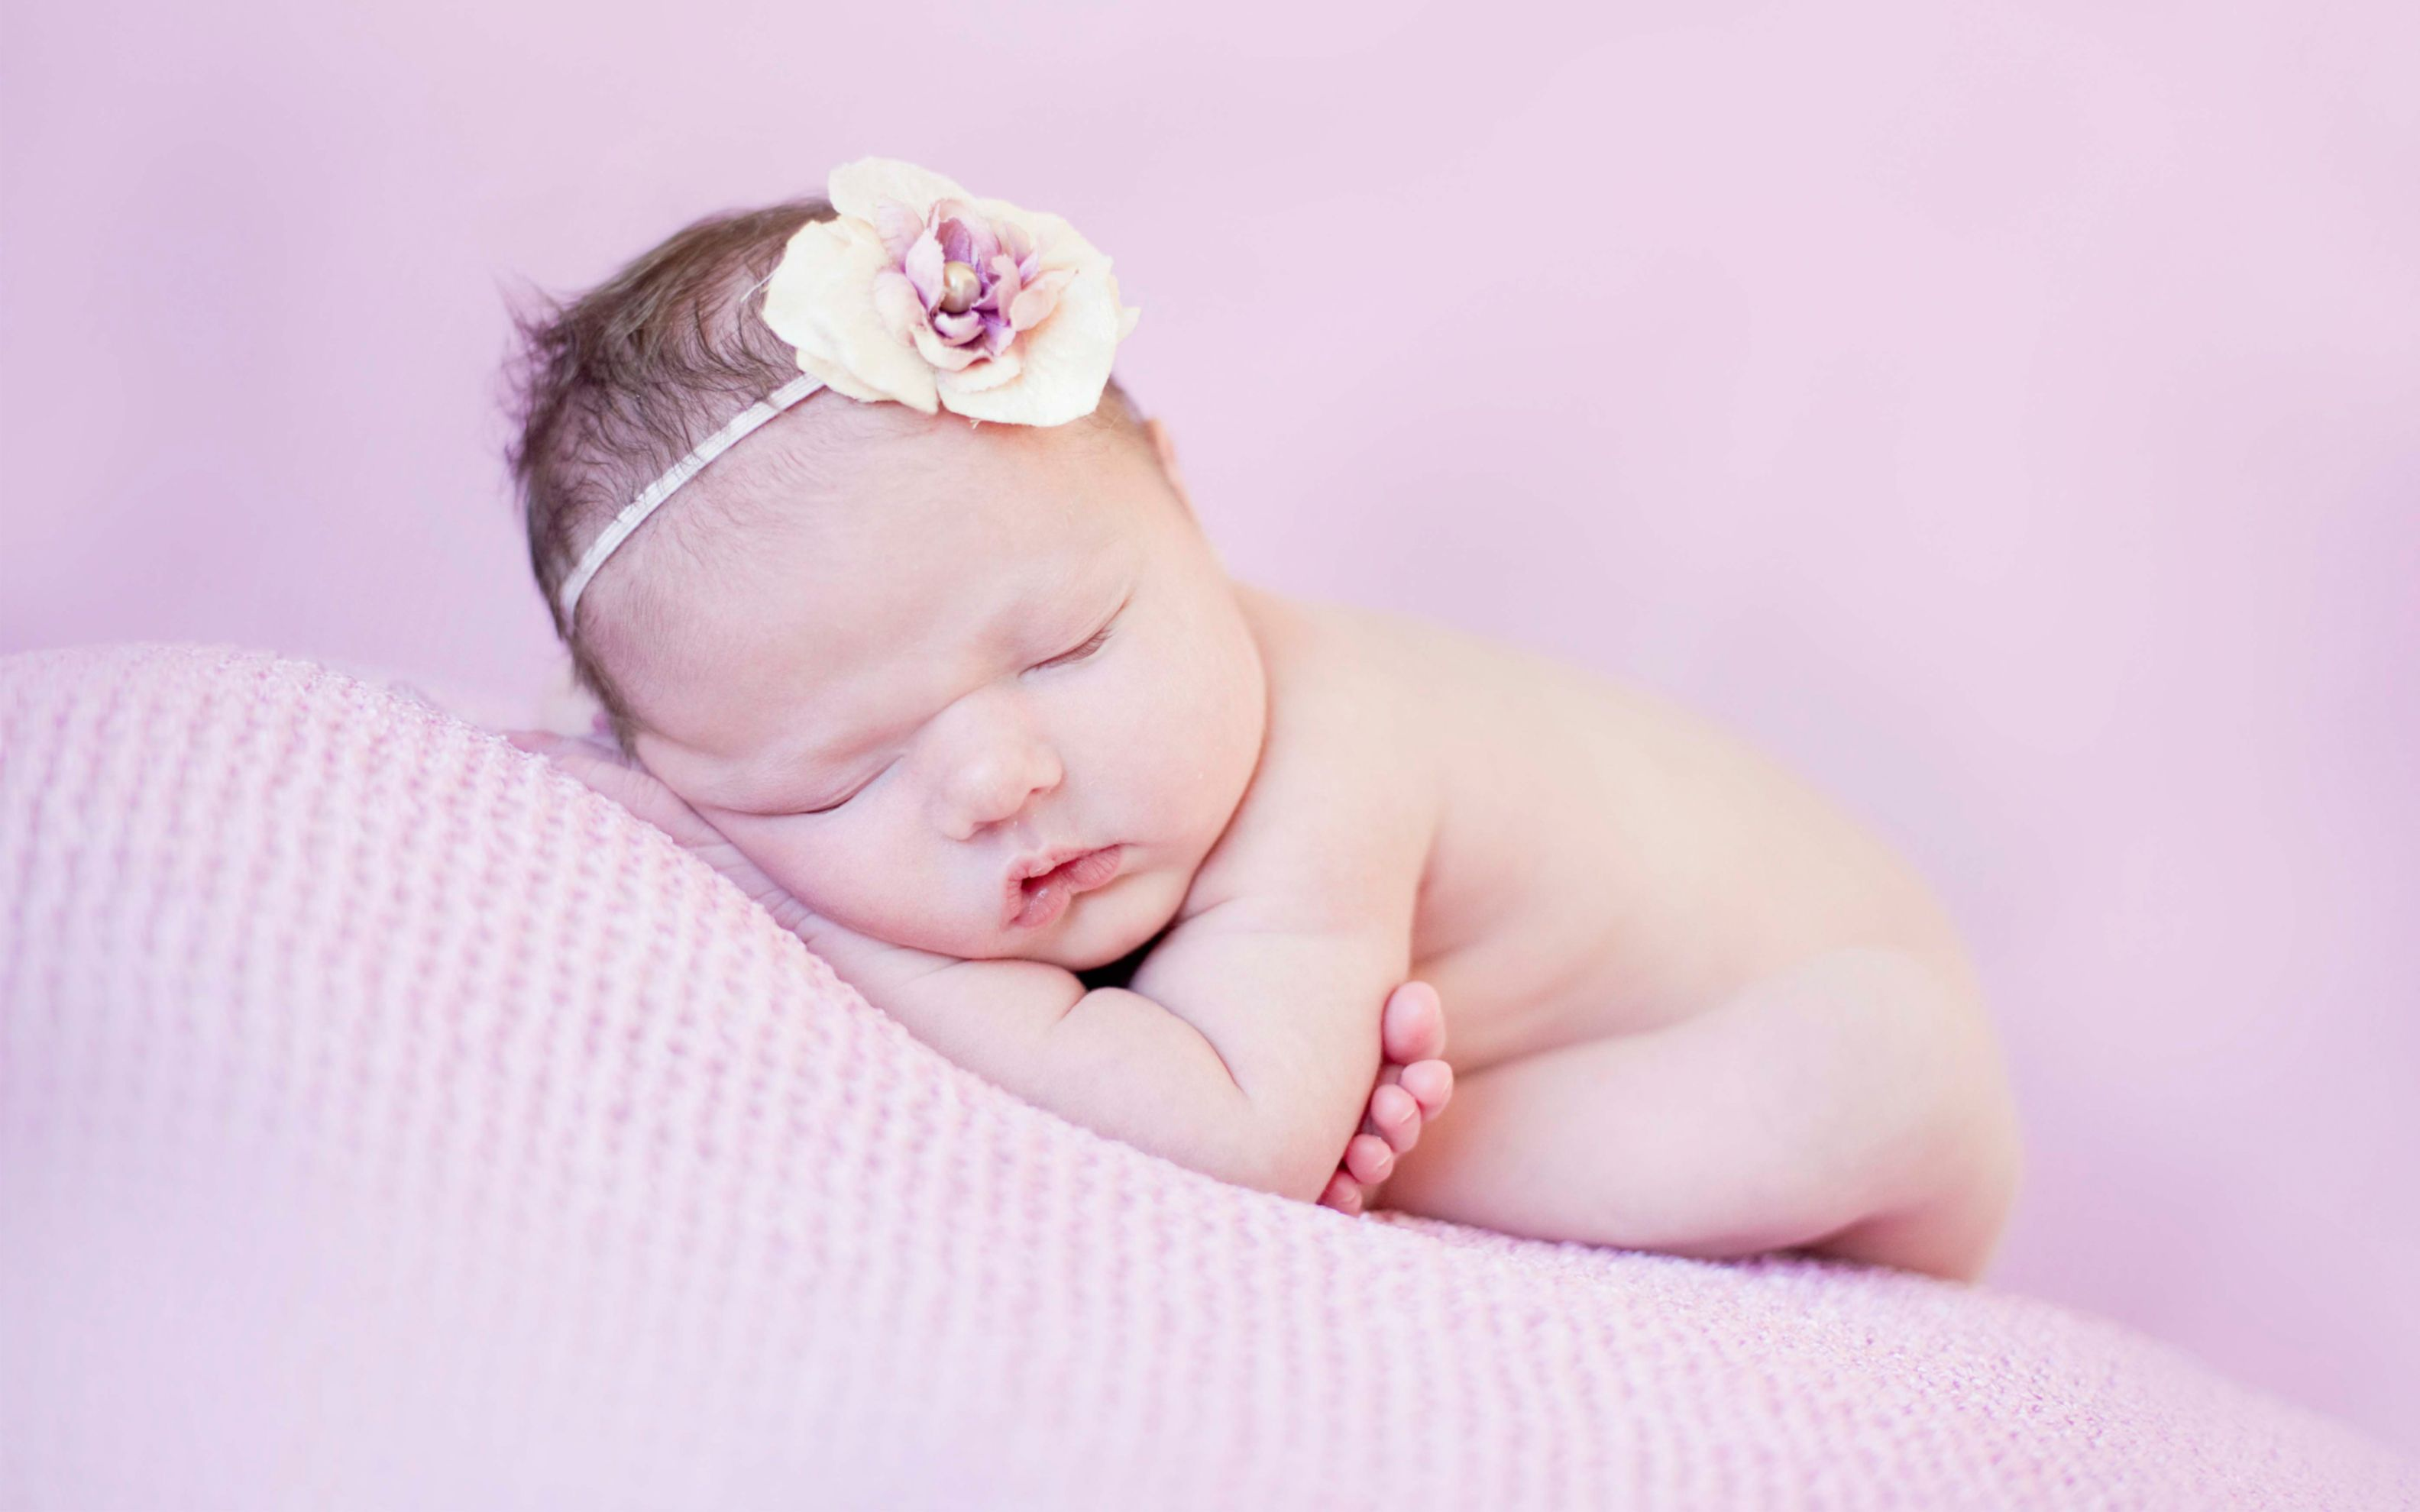 Download free HD Cute Newborn Wide Wallpaper, image